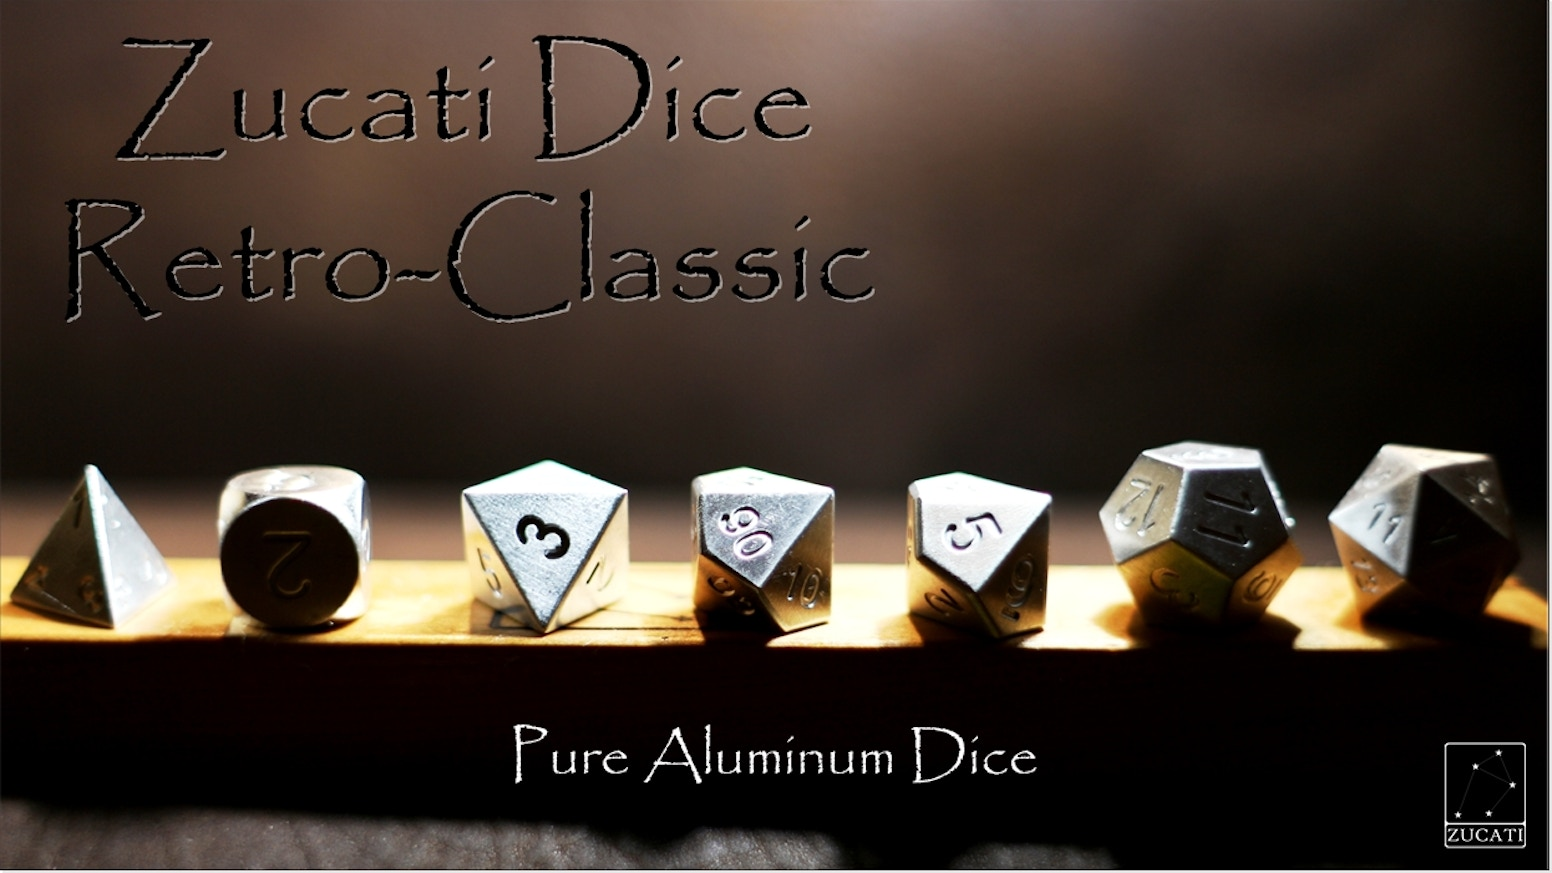 Aluminum, Copper, Brass, Bronze, Tungsten, Titanium, Magnesium, Zirconium, Stainless, Cast Iron, Meteorite, Exotic dice for everyone.